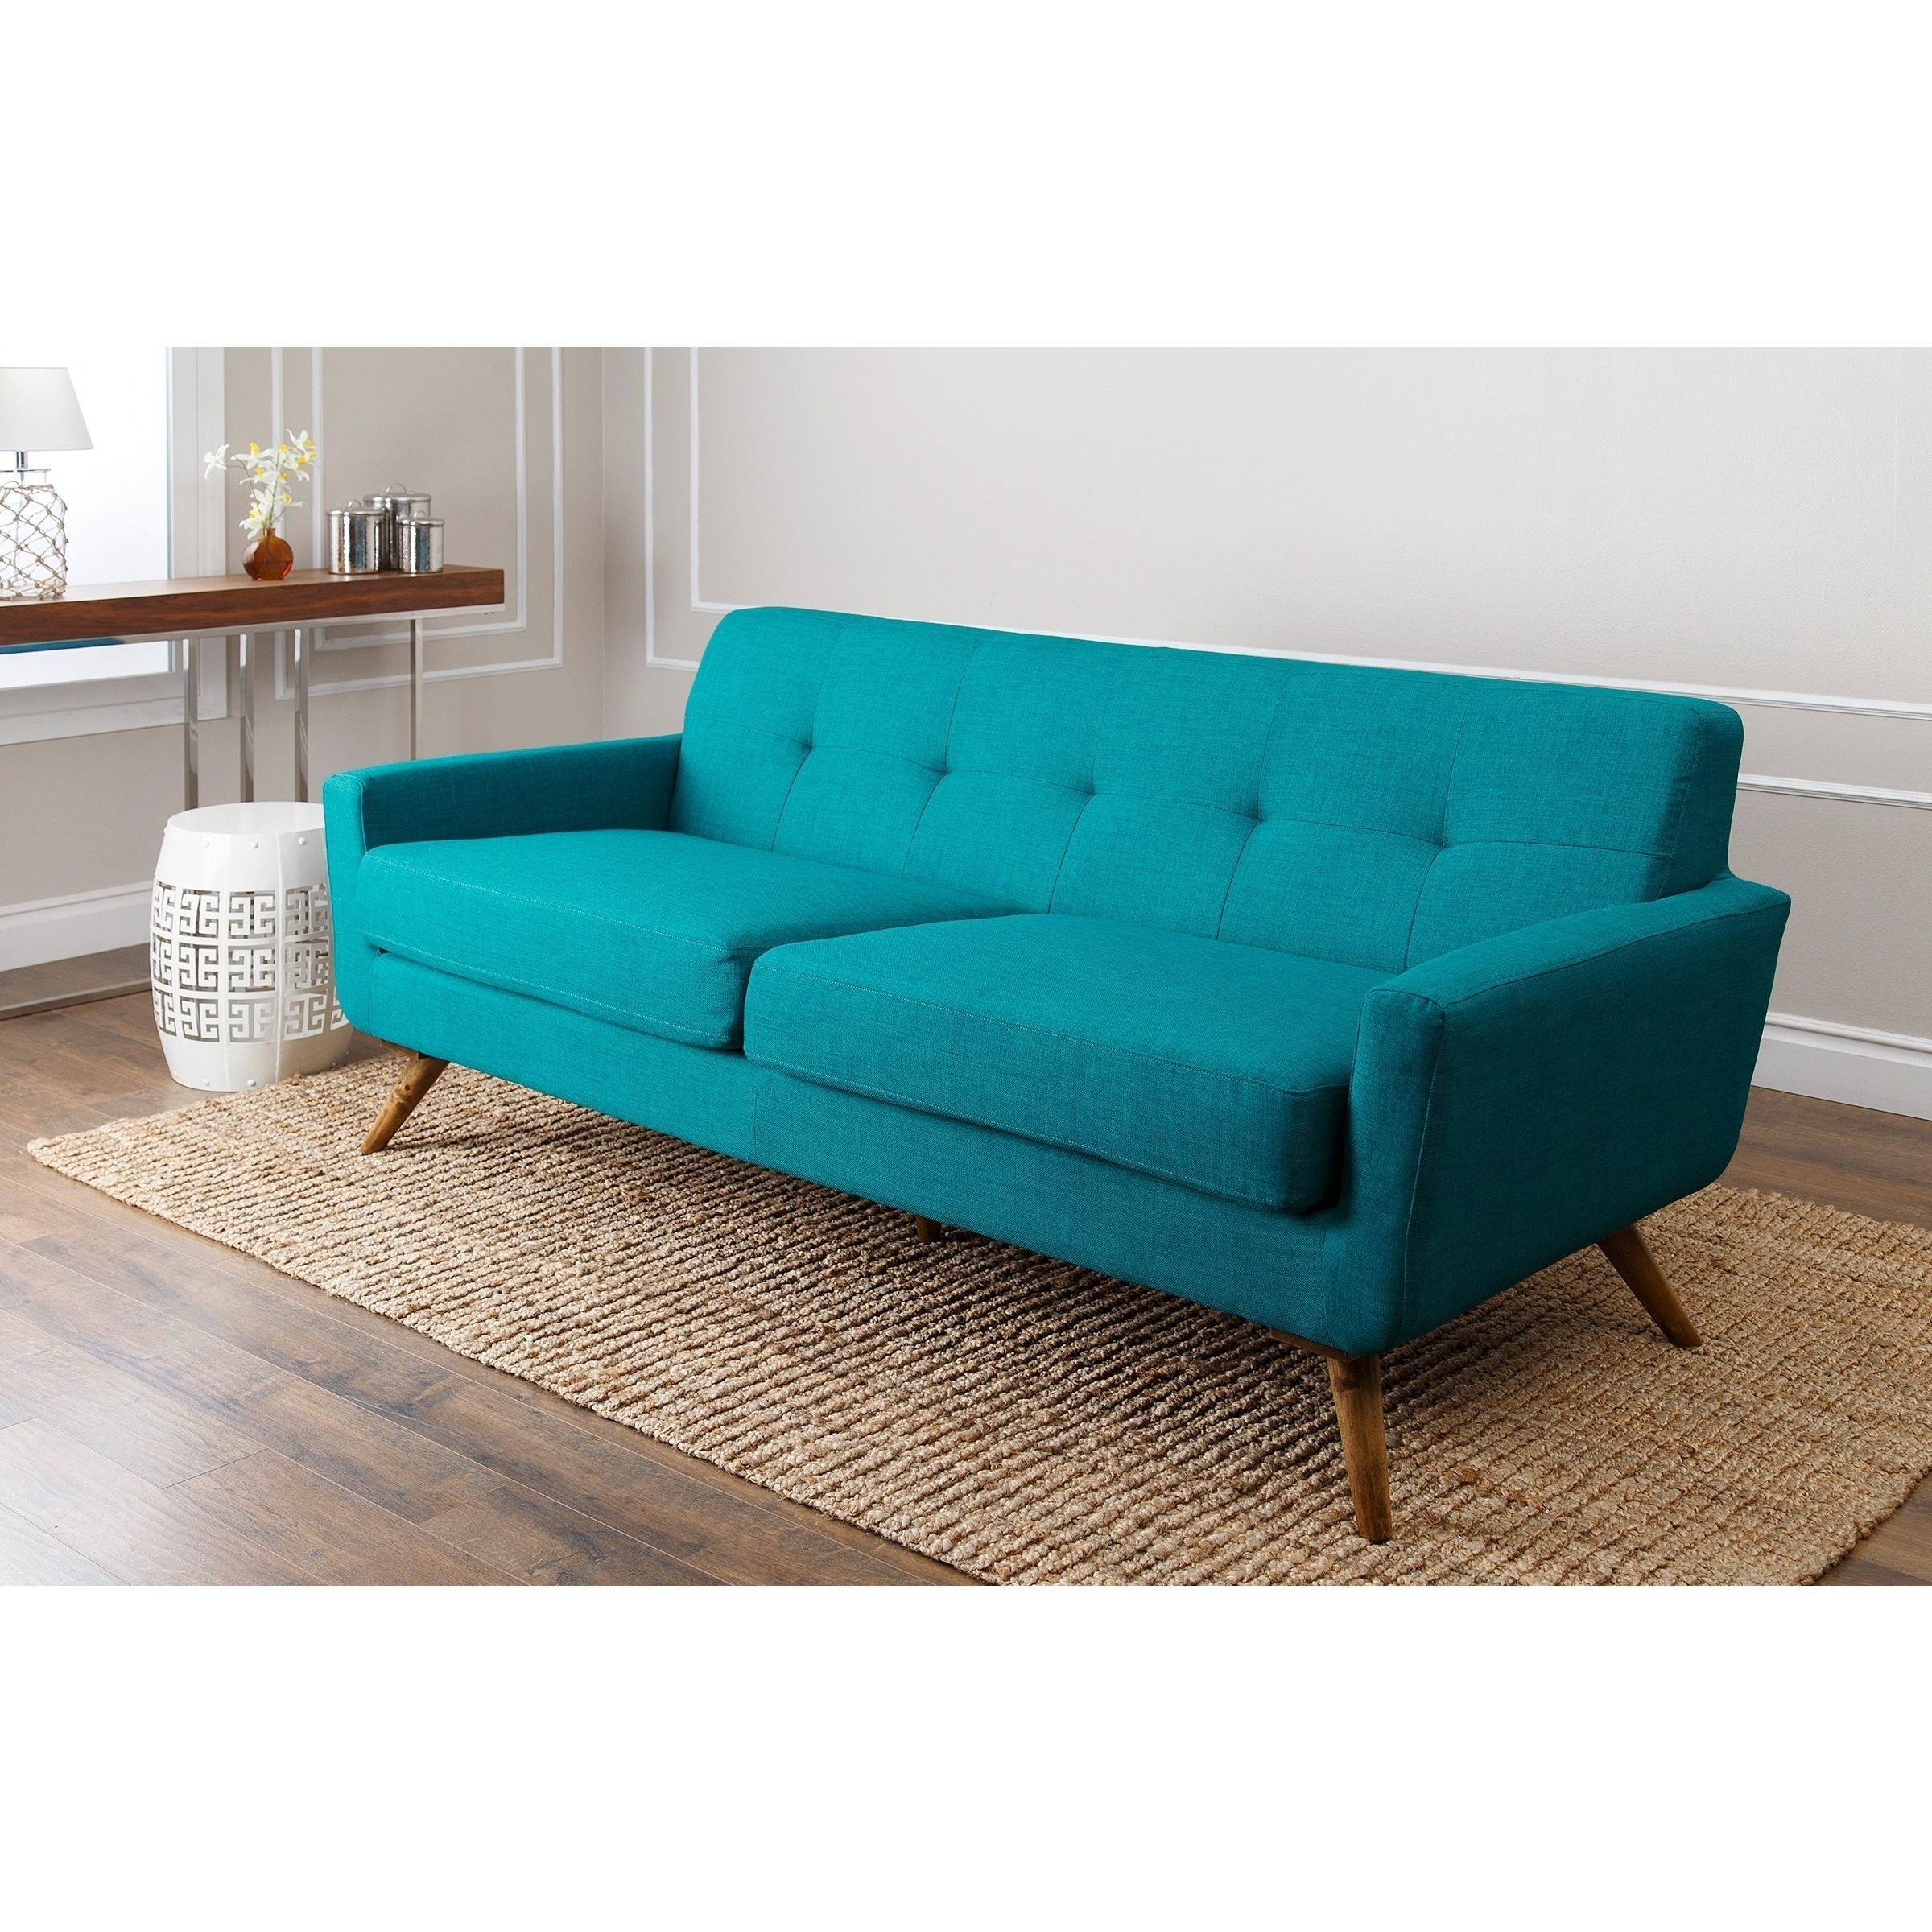 Popular Update Your Home With Modern Style Thanks To This Petrol Blue Sofa Pertaining To Turquoise Sofas (View 10 of 20)